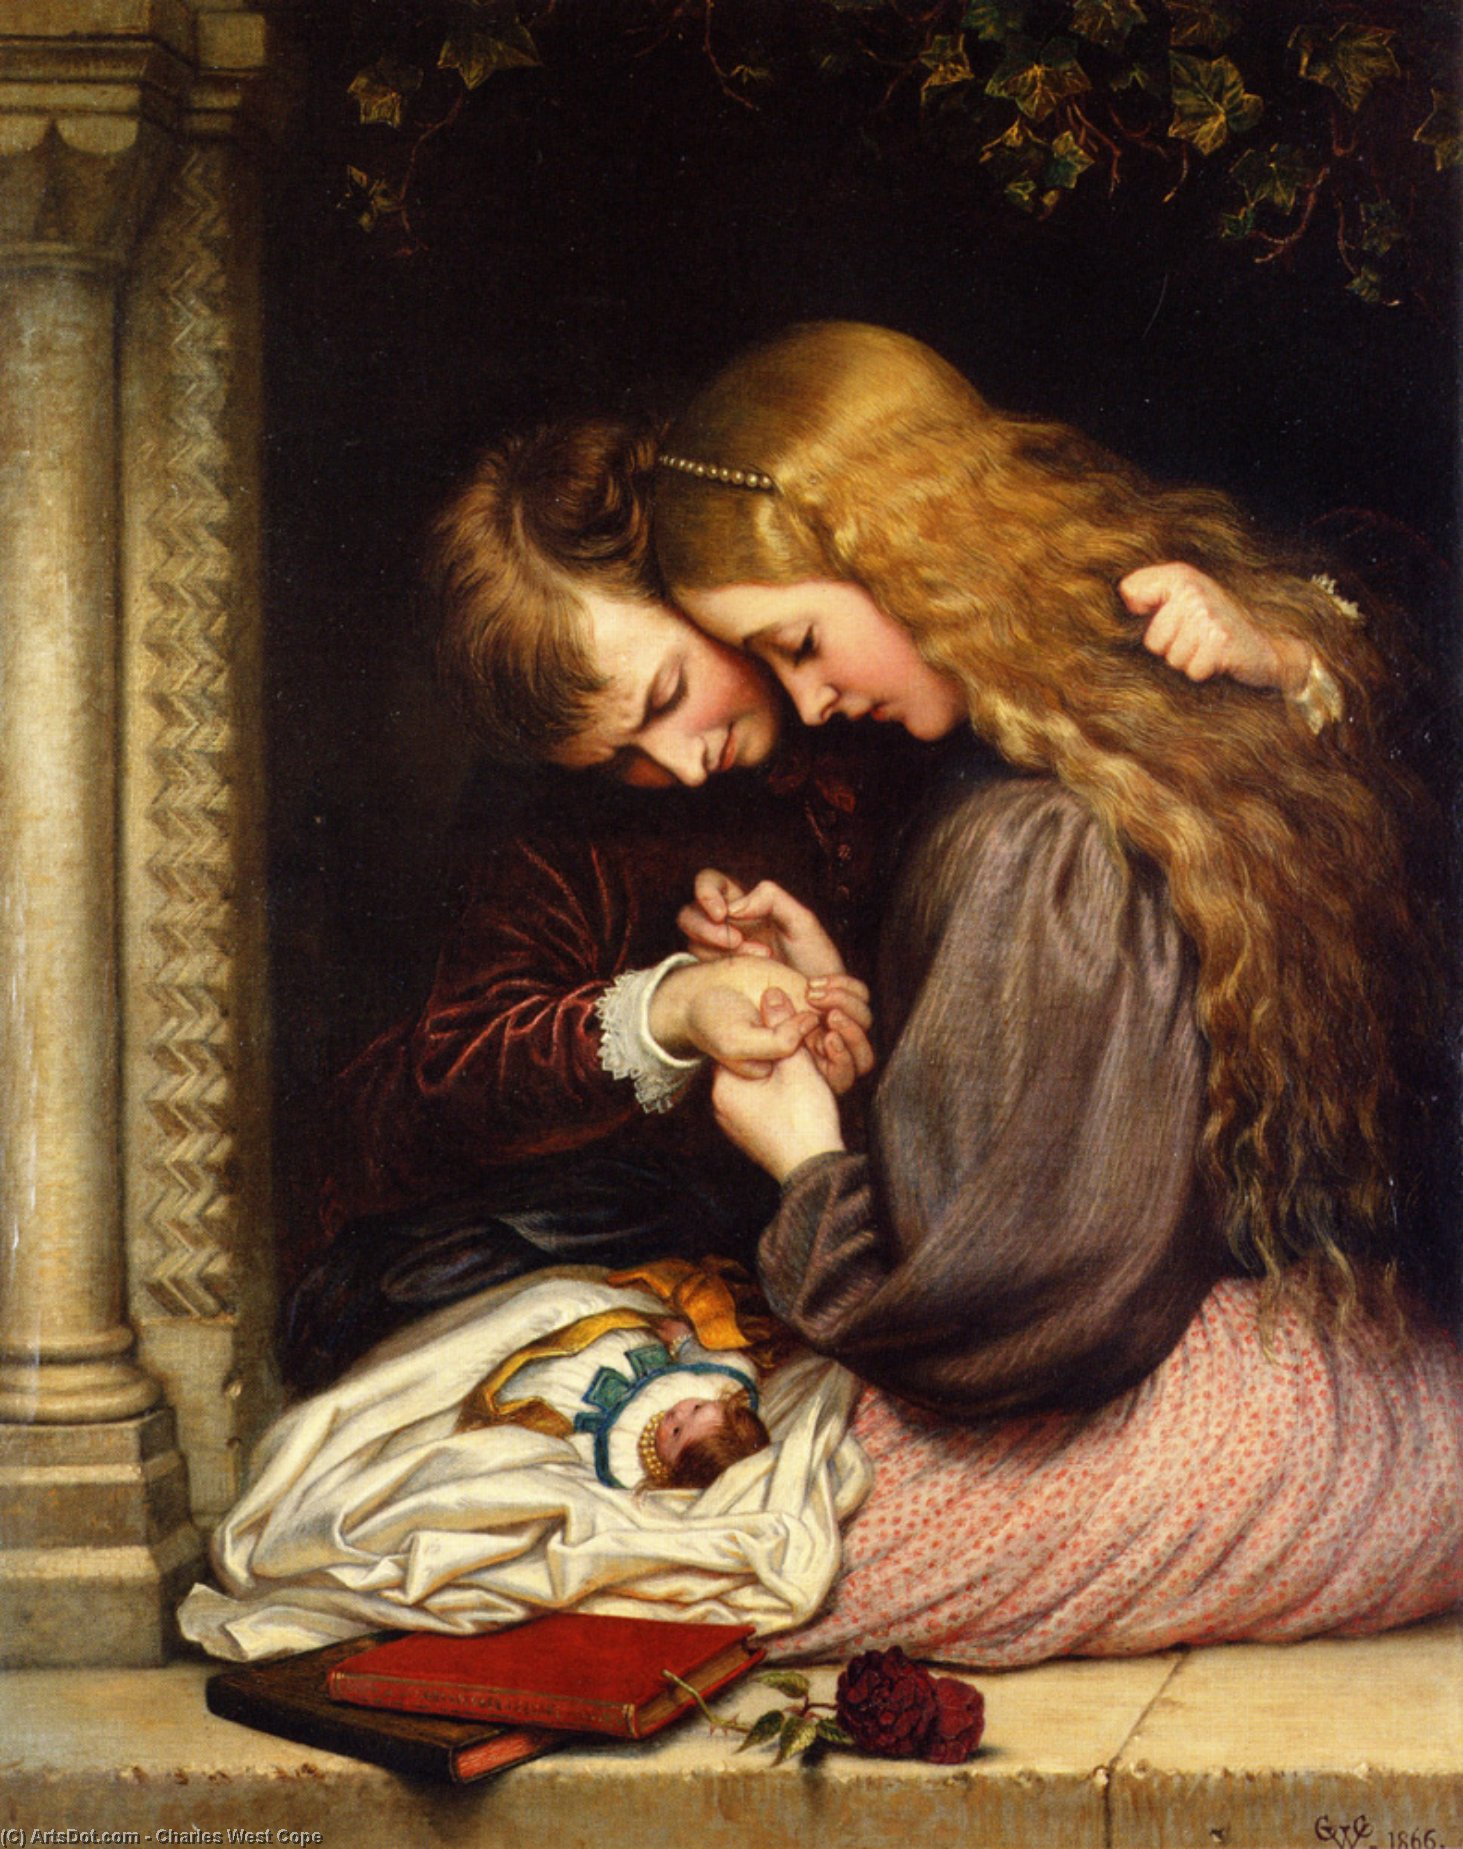 l'épine, 1866 de Charles West Cope (1811-1890, United Kingdom)